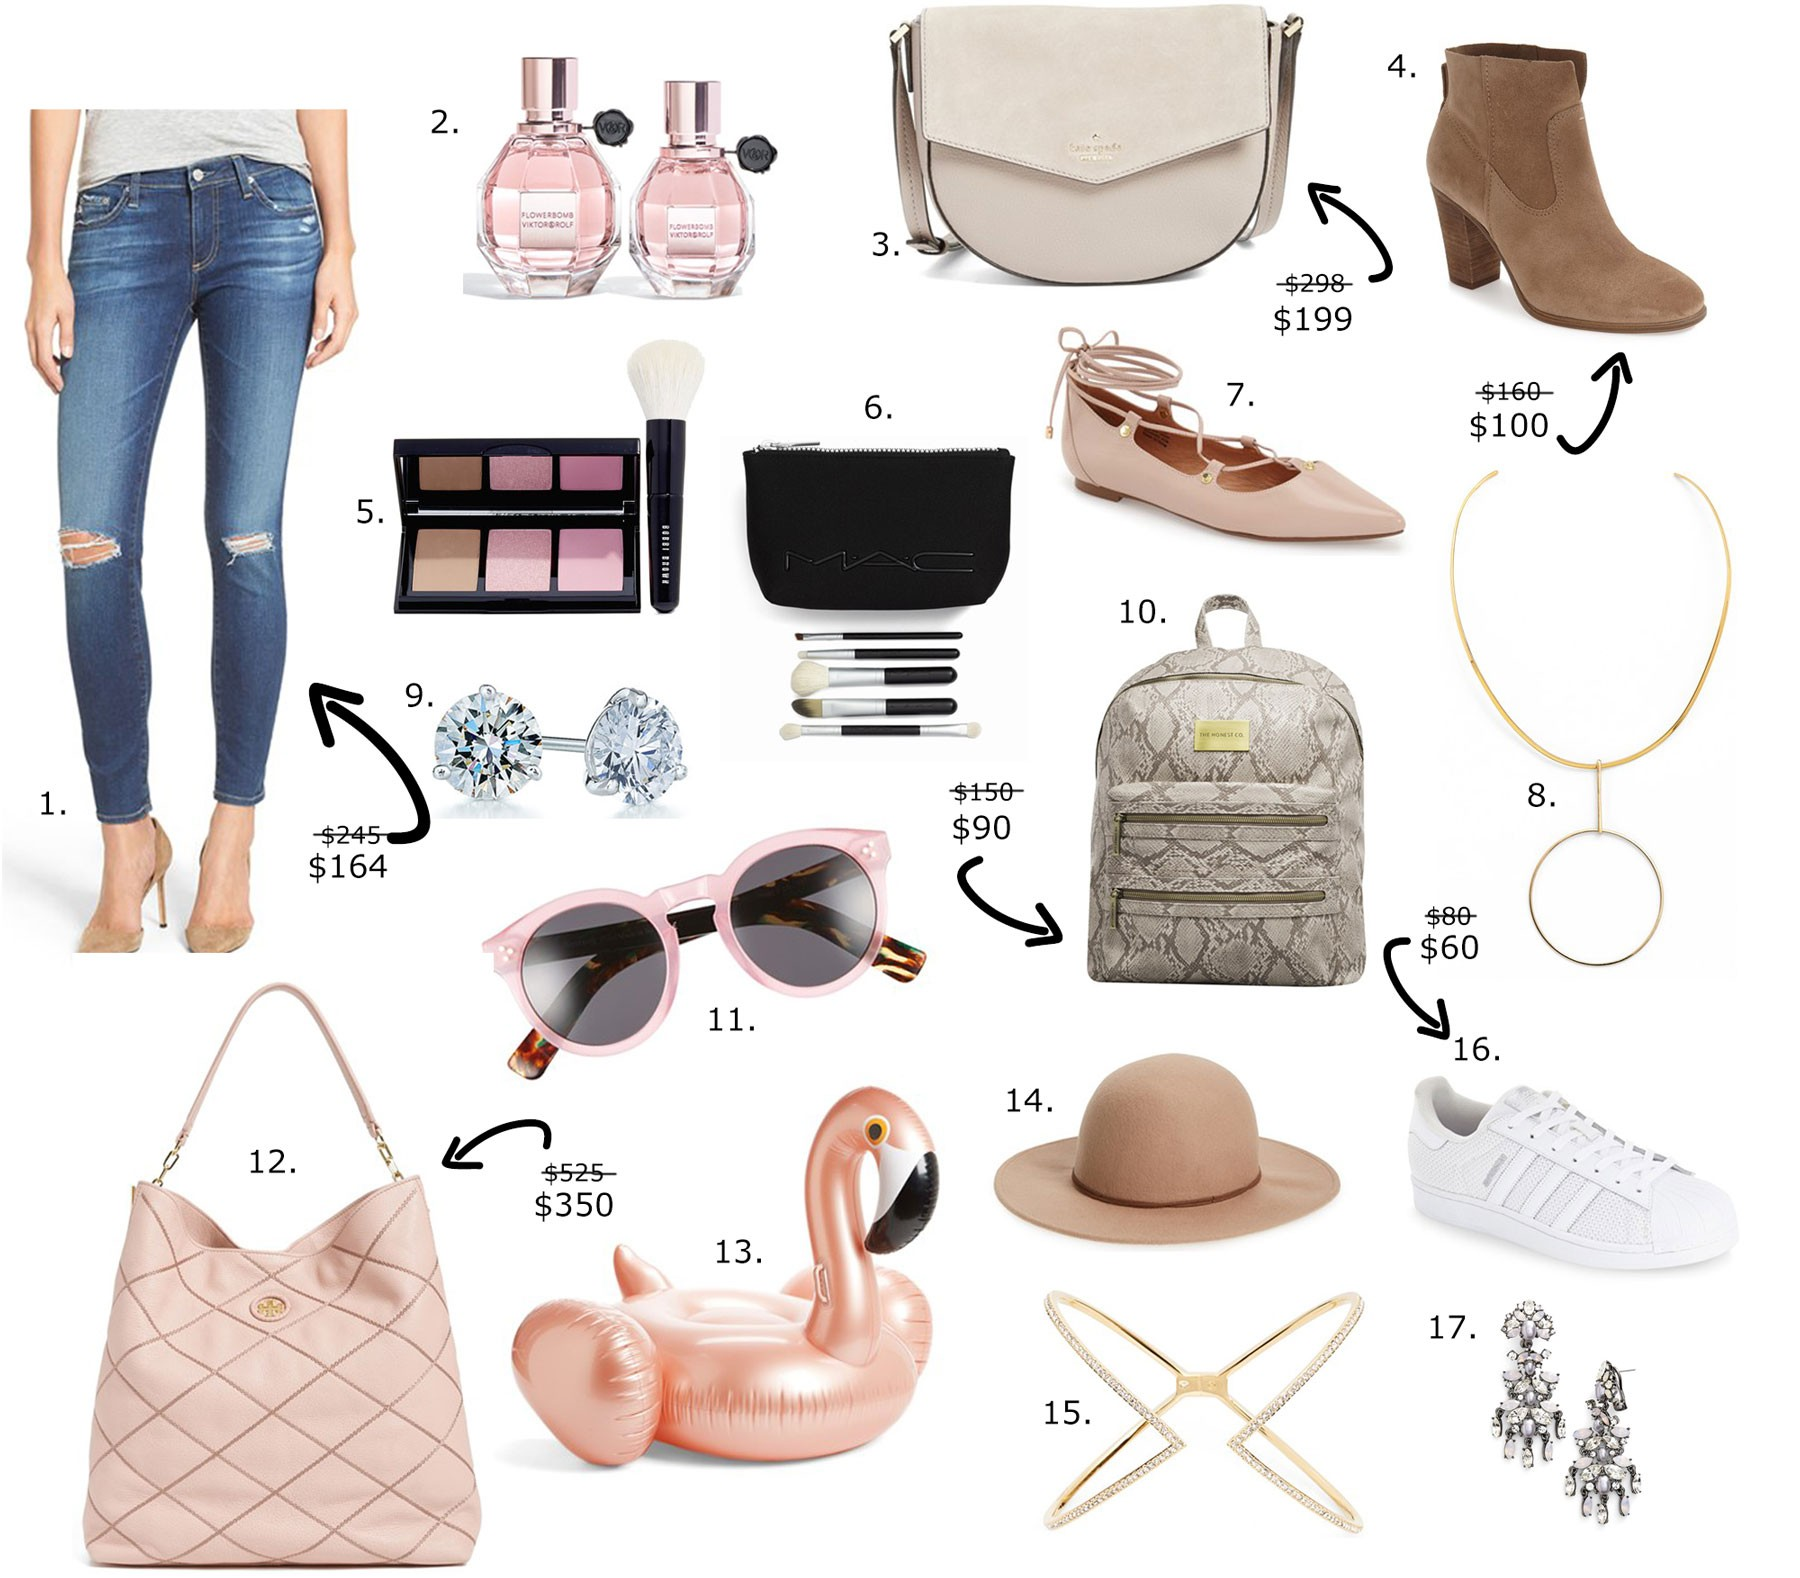 My Nordstrom Sale Wish List Nail That Accent